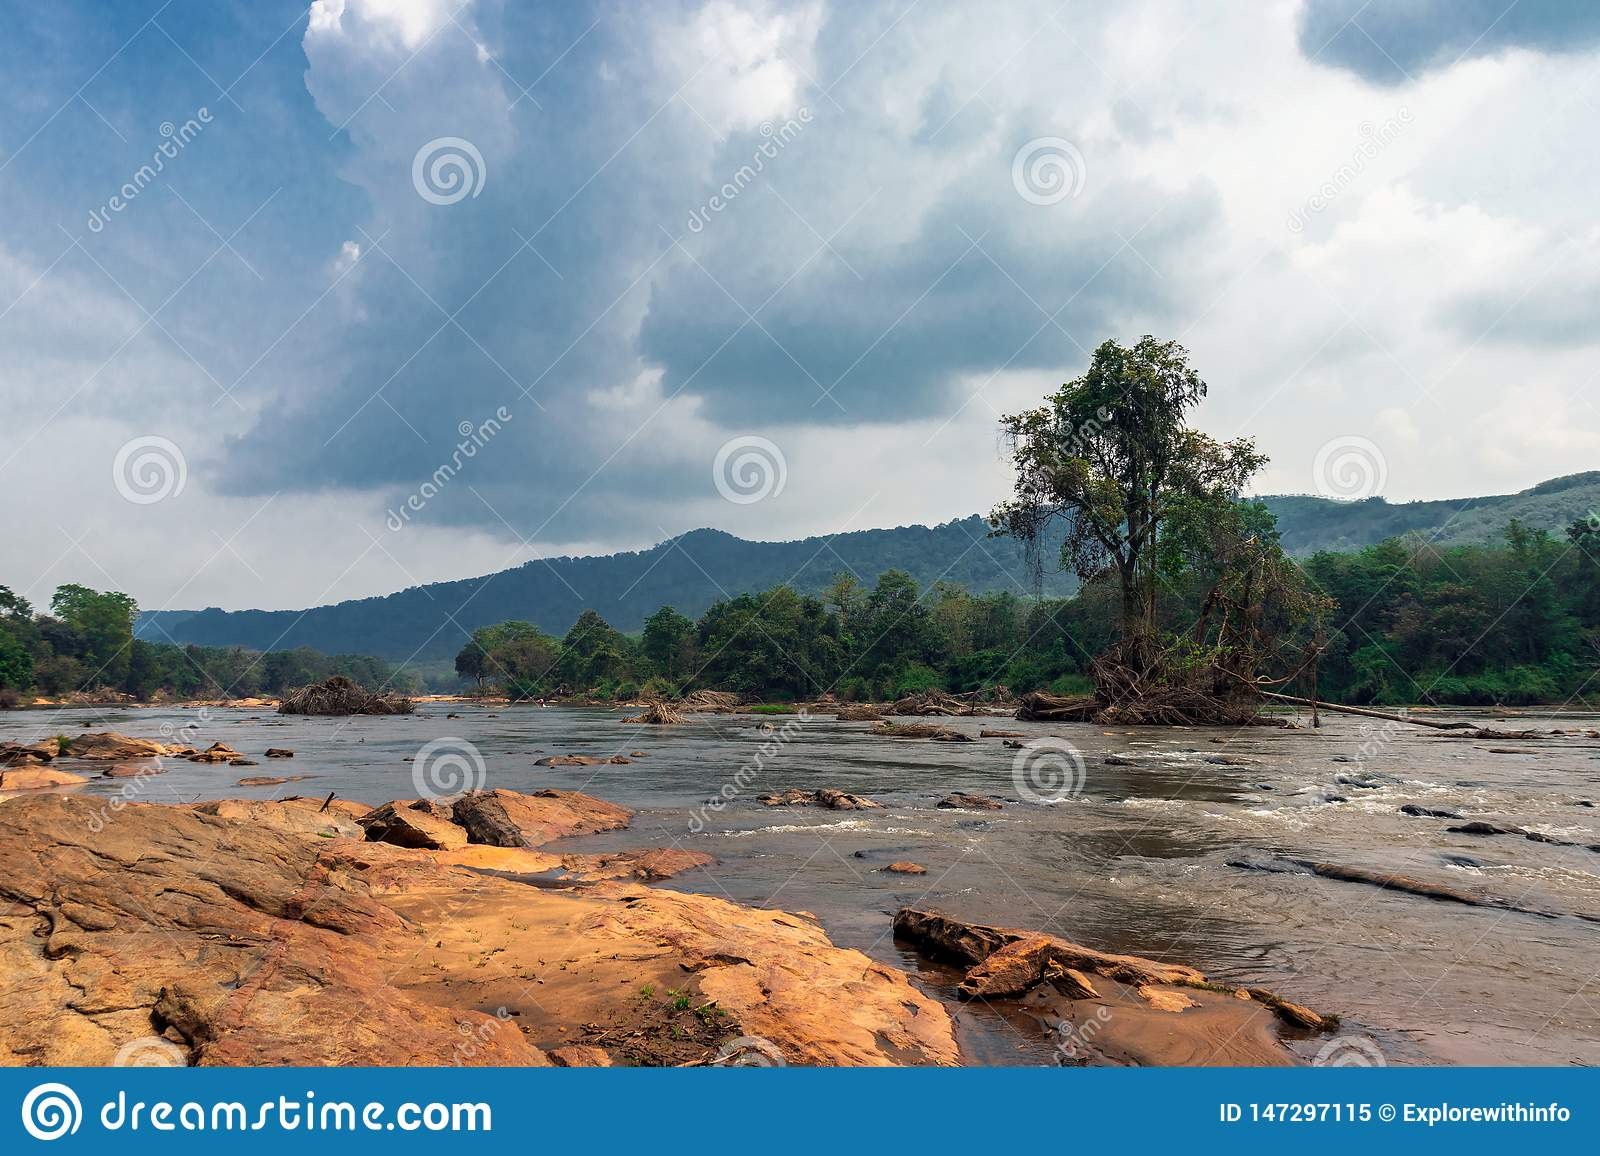 Water flow of athirapally waterfall with mountain